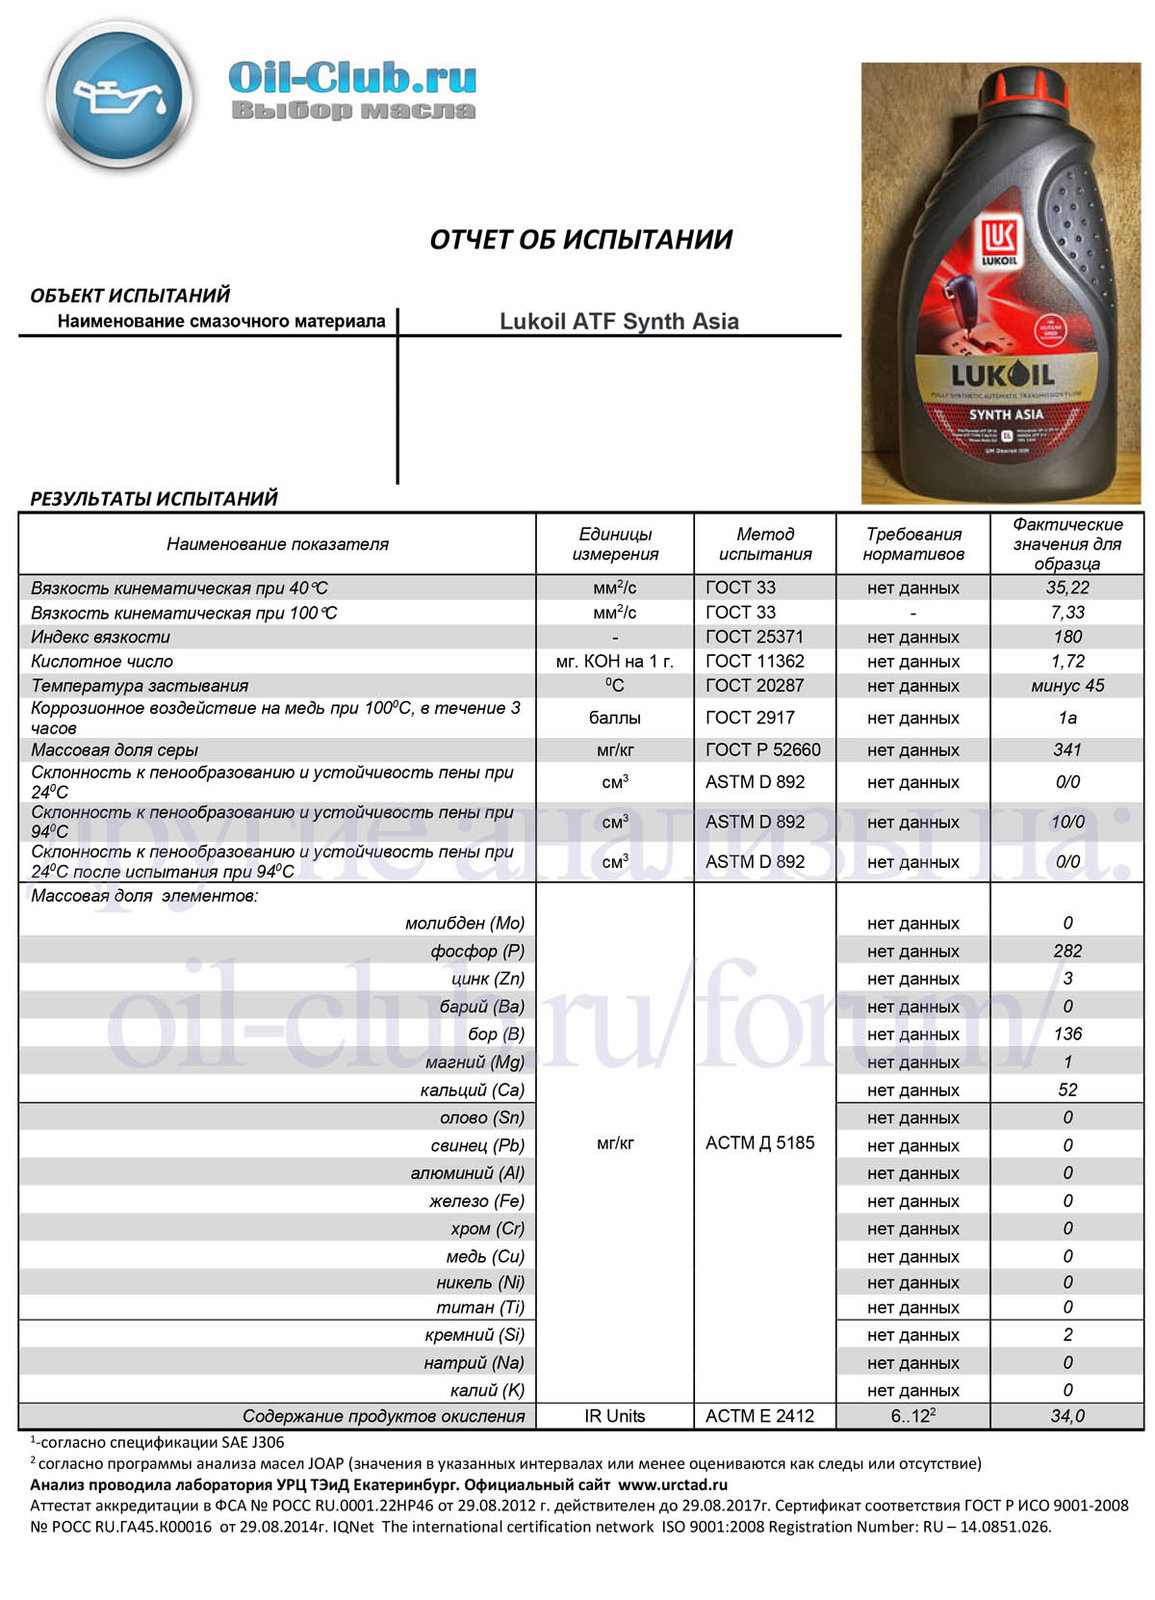 Lukoil ATF Synth Asia (VOA BASE) копия.jpg